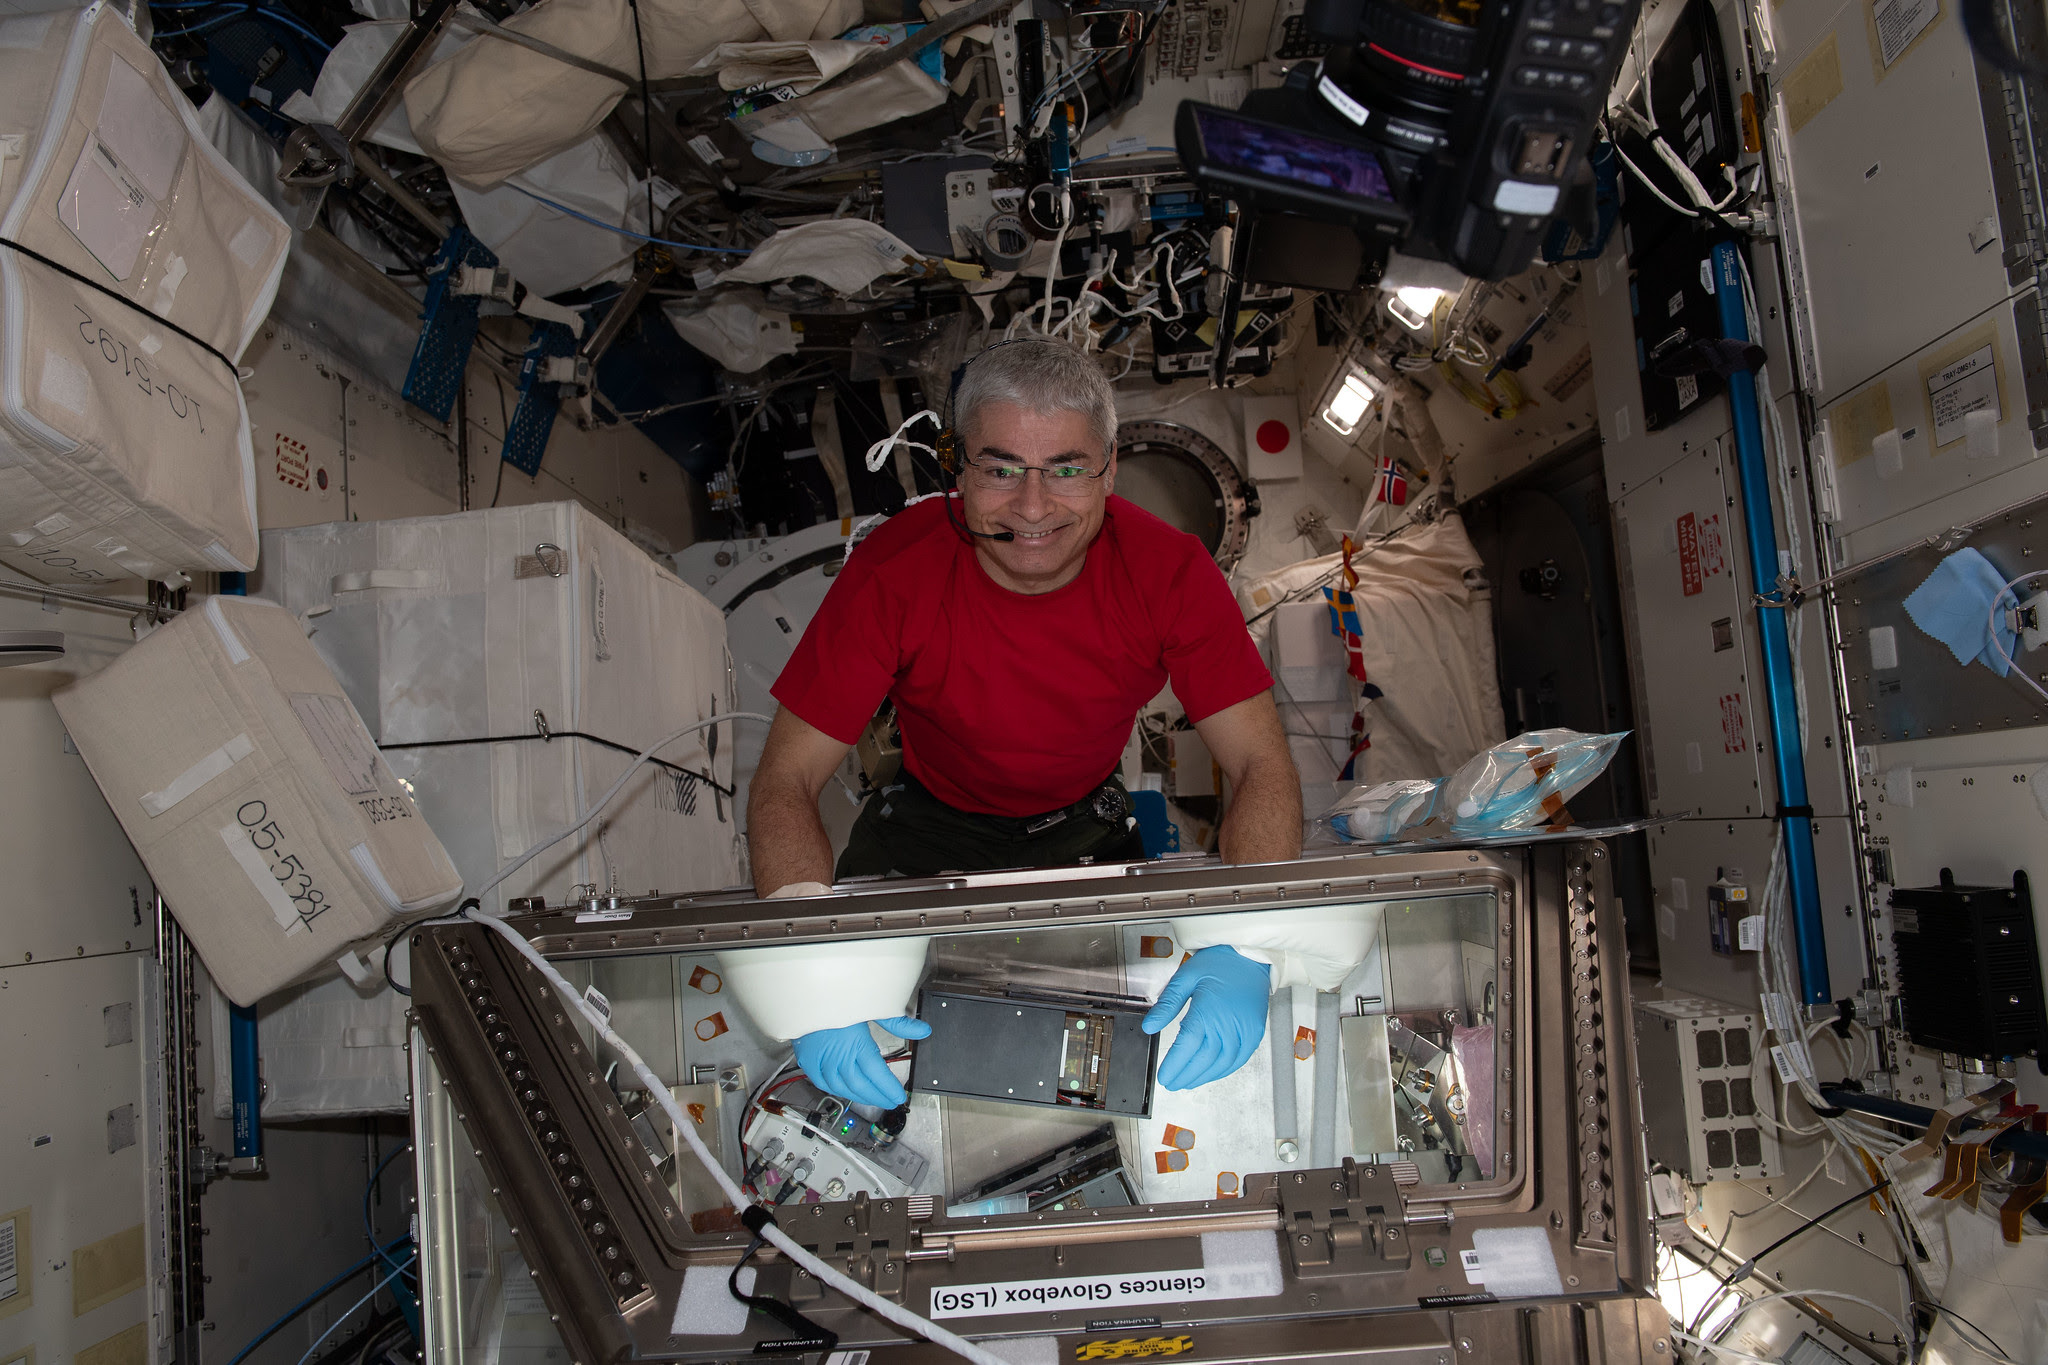 NASA astronaut gets extended stay in space for record-breaking 353-day mission